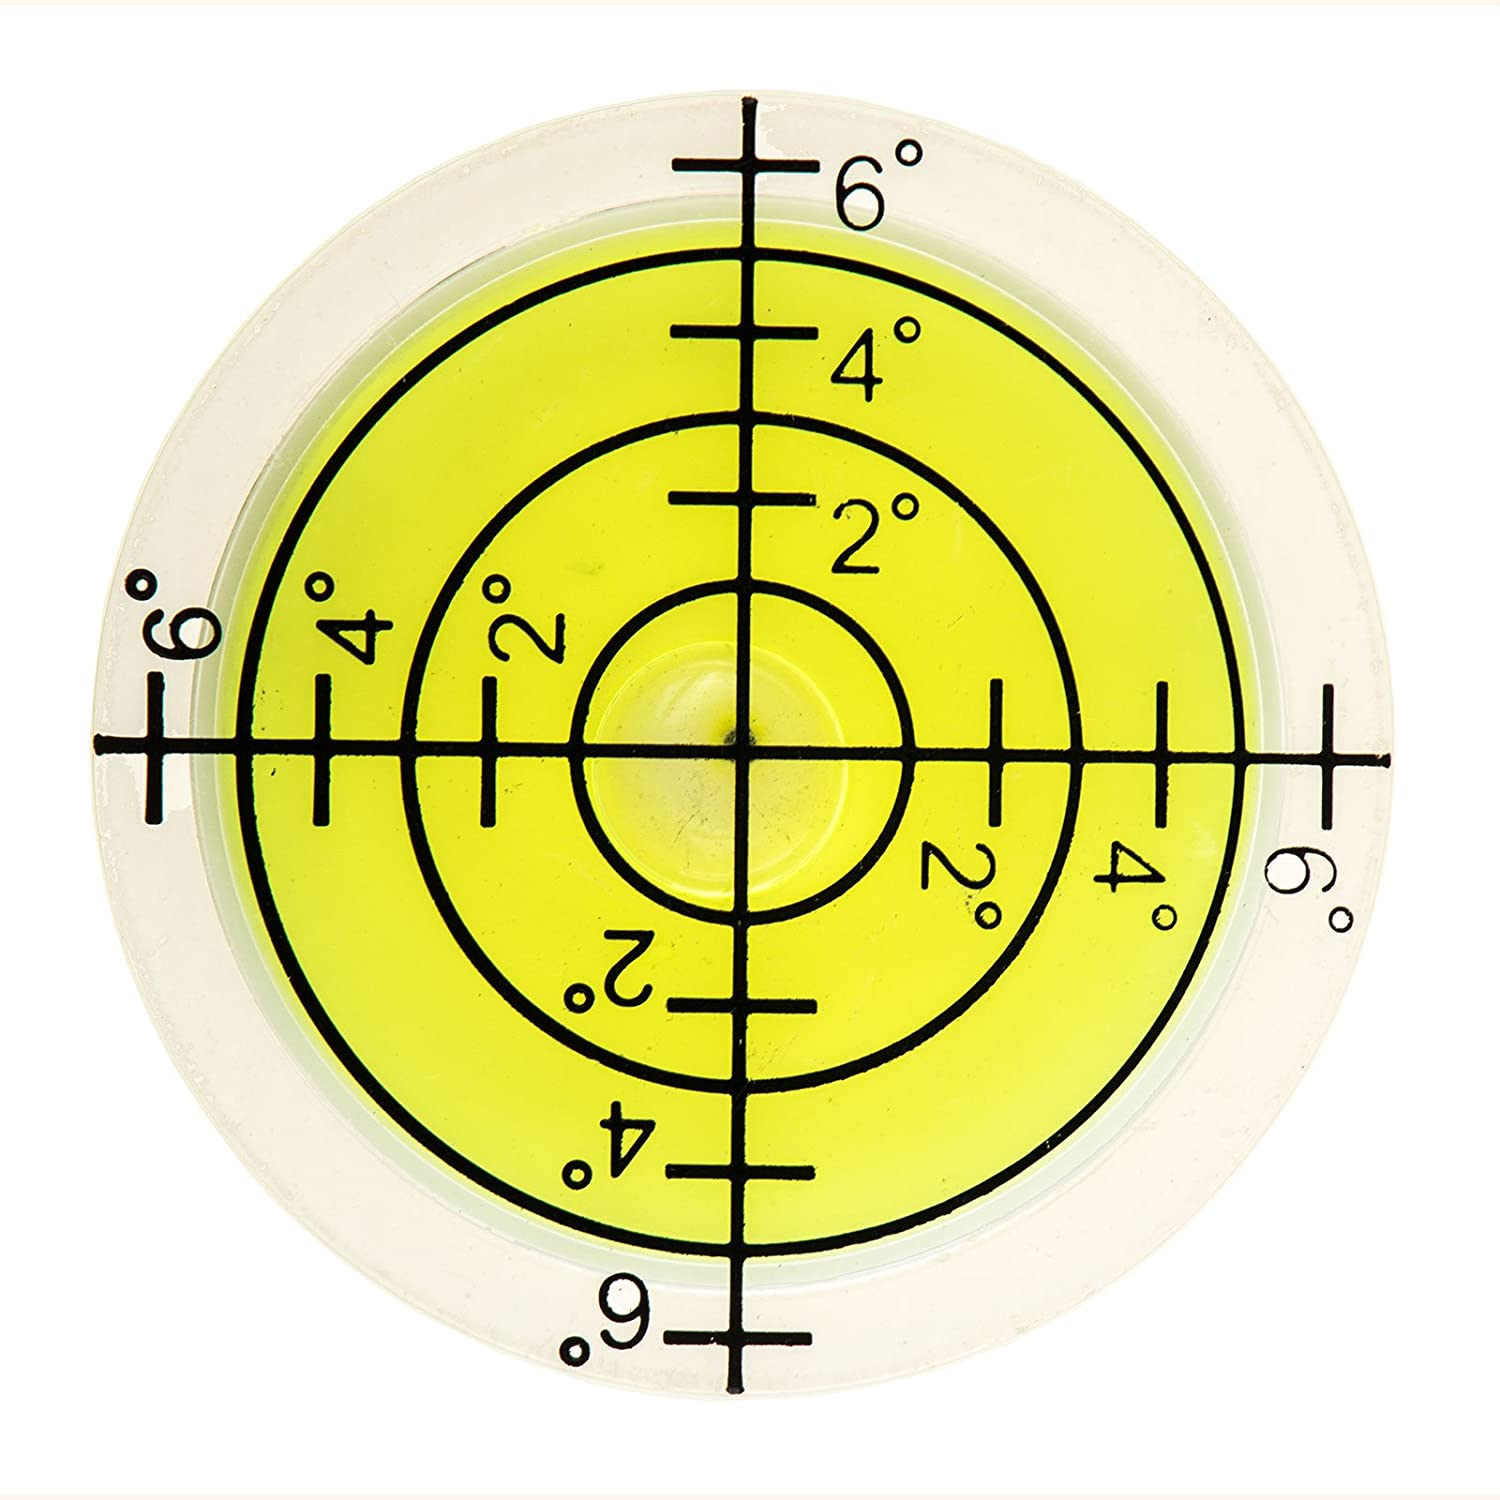 Circular Level with Angle Measurement 32 mm Diameter for Camping, Crafts, Photography etc lillybox